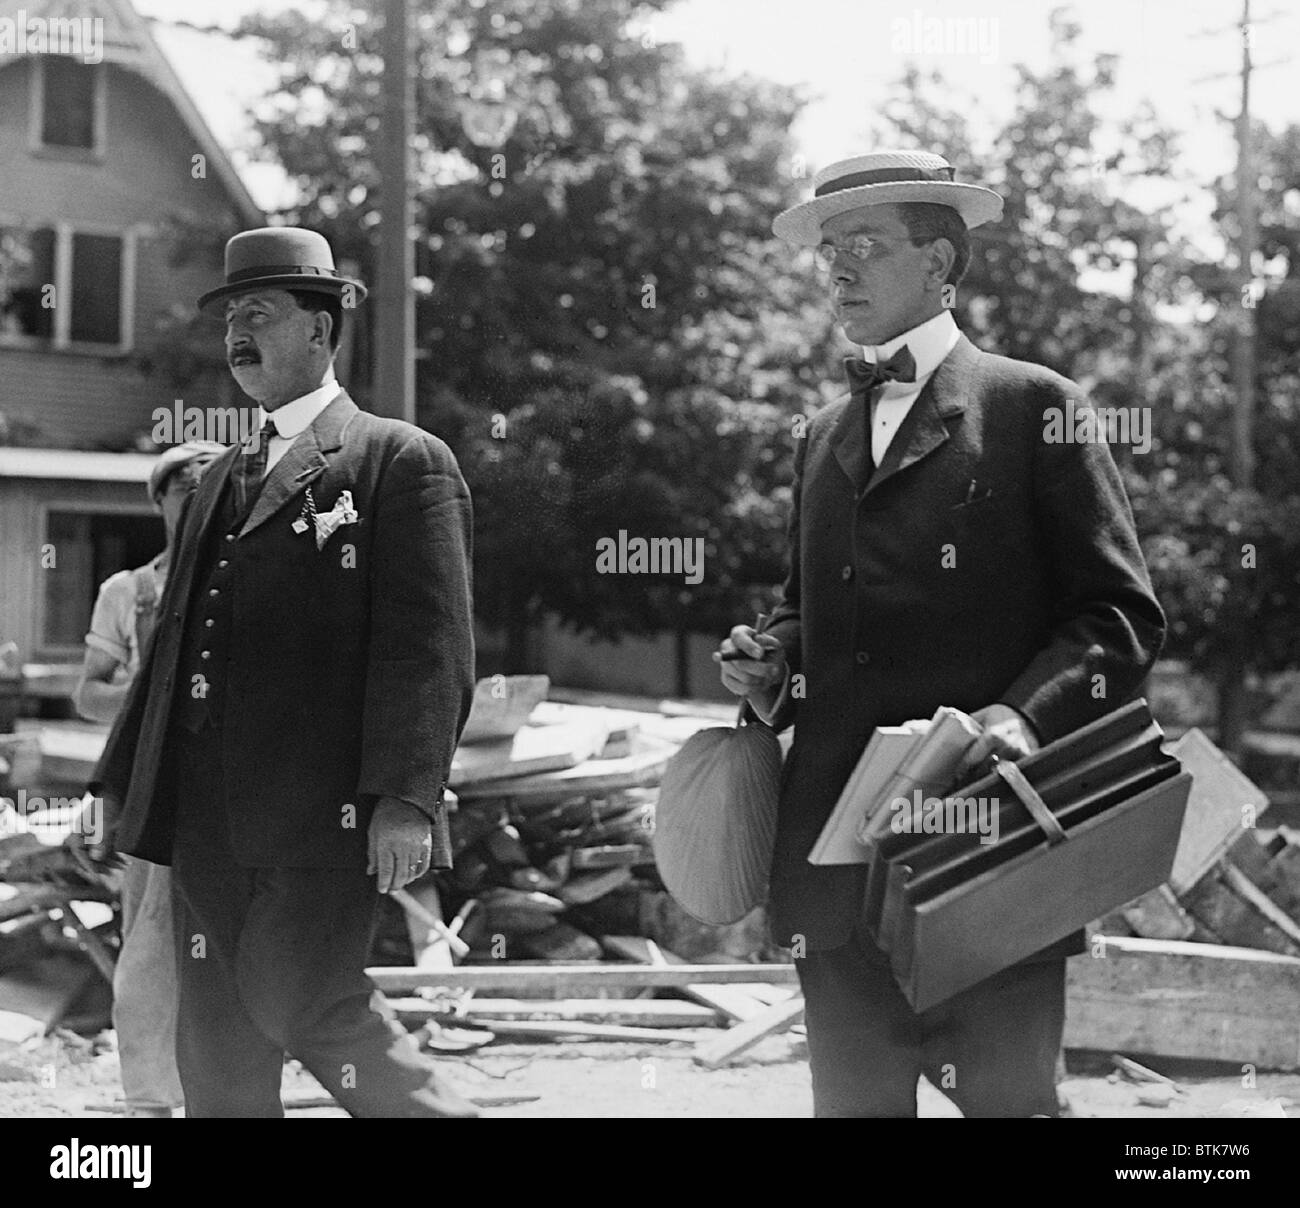 Harry Thaw (1871-1947), murderer of Stanford White, with unidentified gentleman, possibly one of his lawyers. Ca. - Stock Image